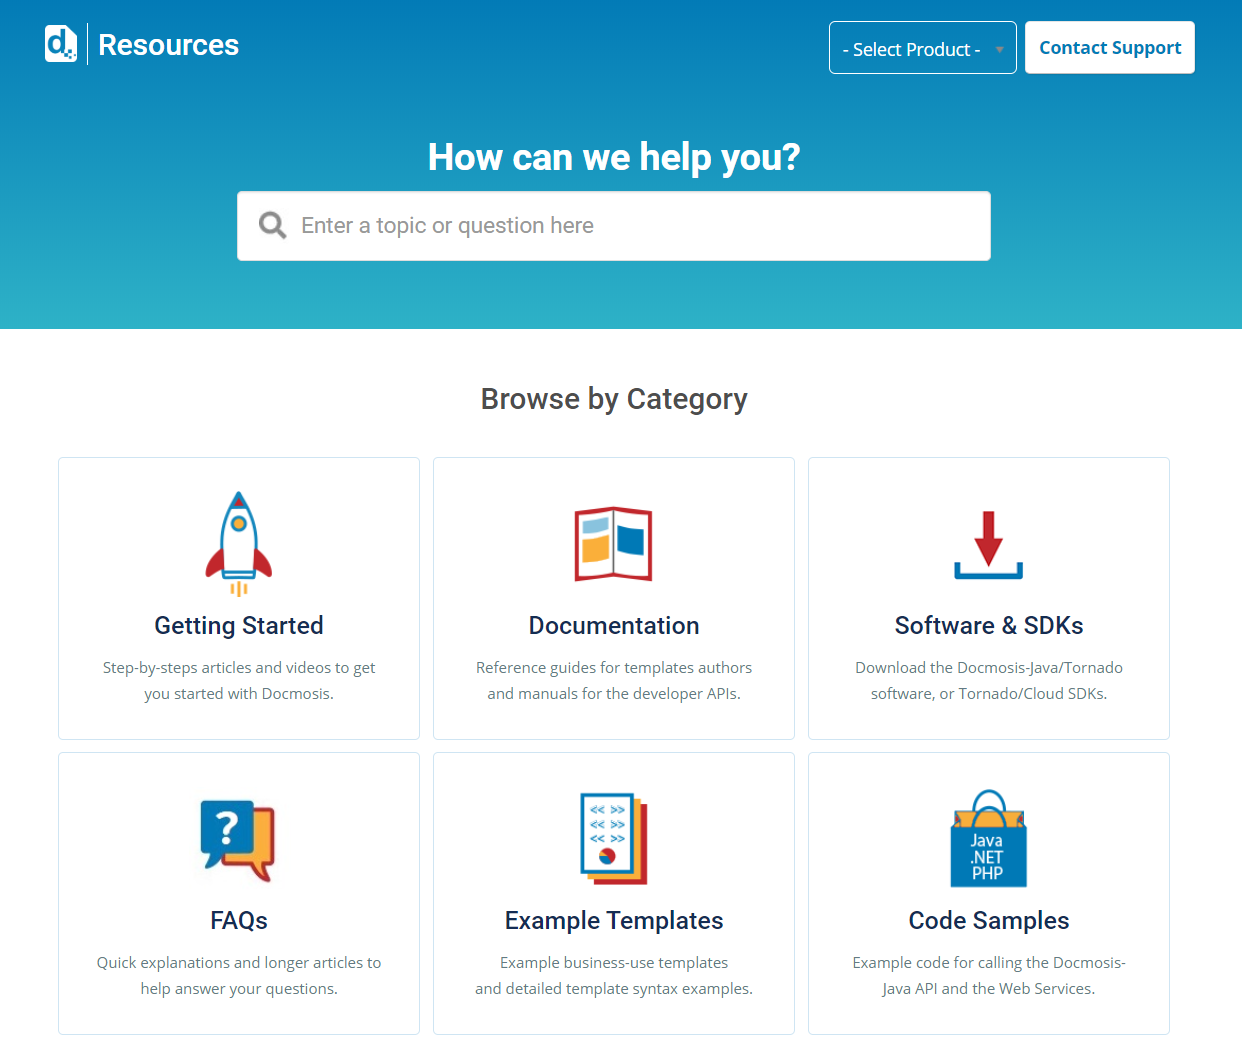 Resources Website